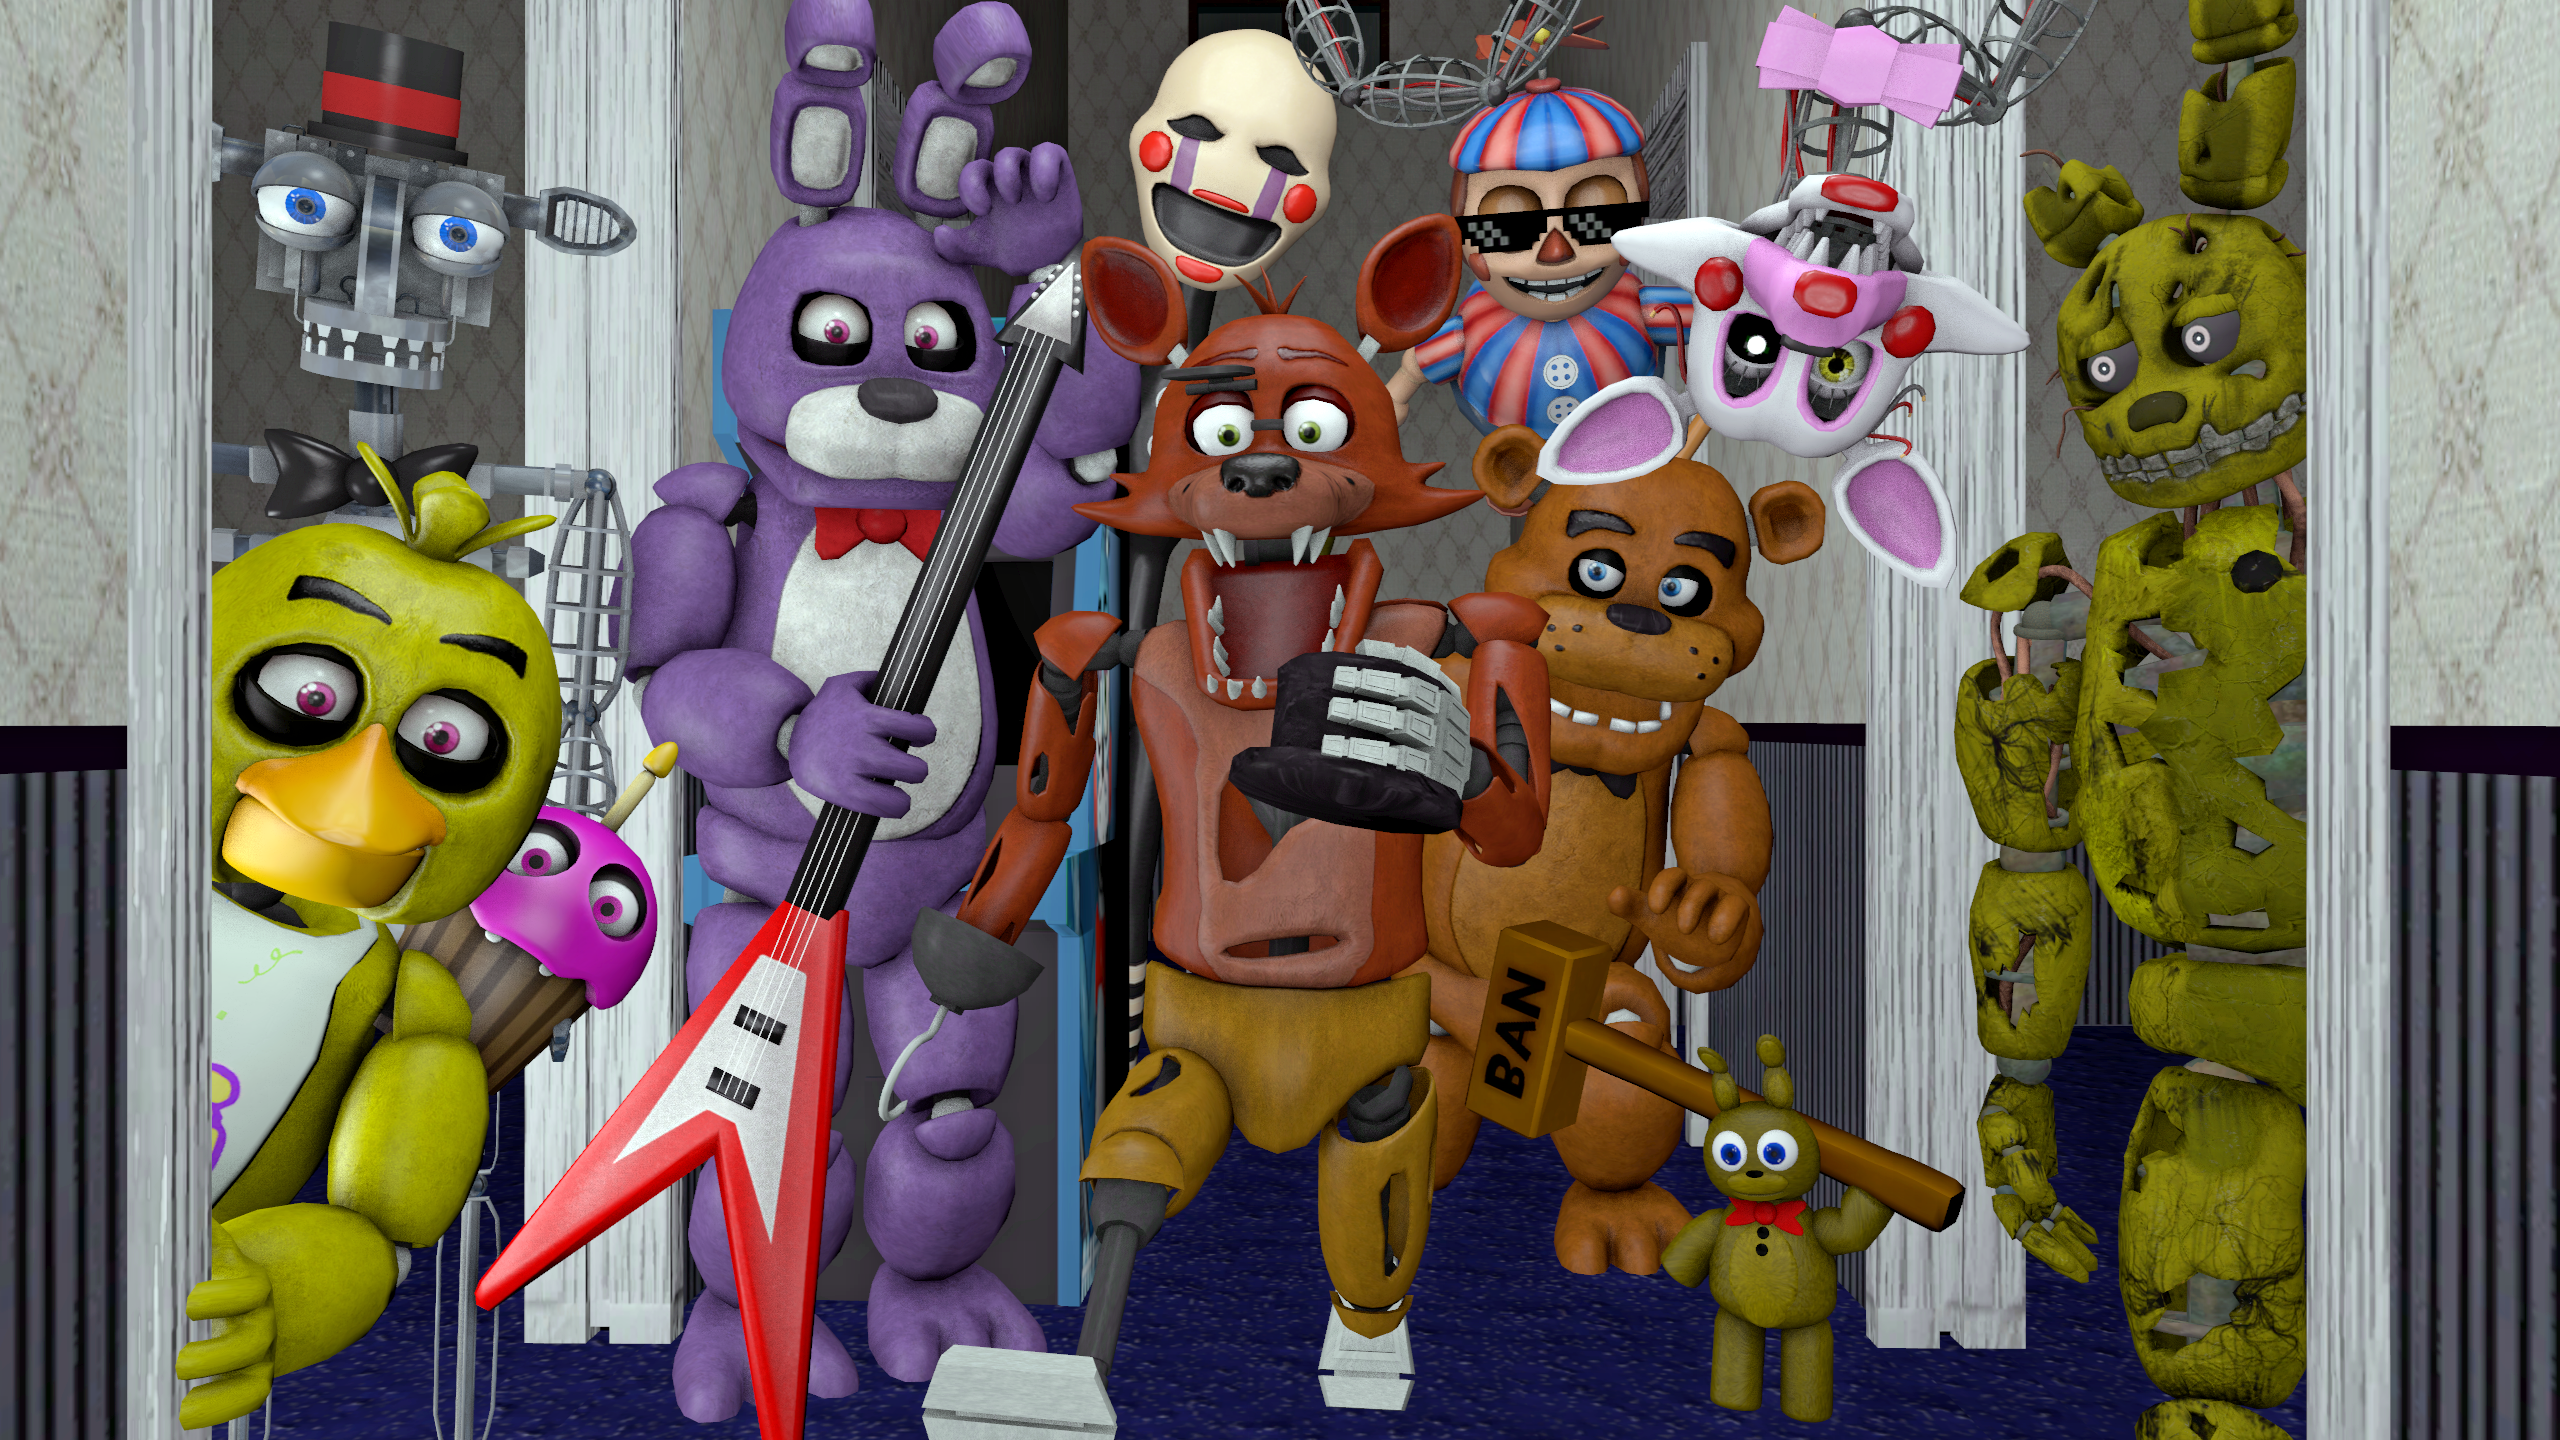 Steam fnaf complete pack publicscrutiny Choice Image